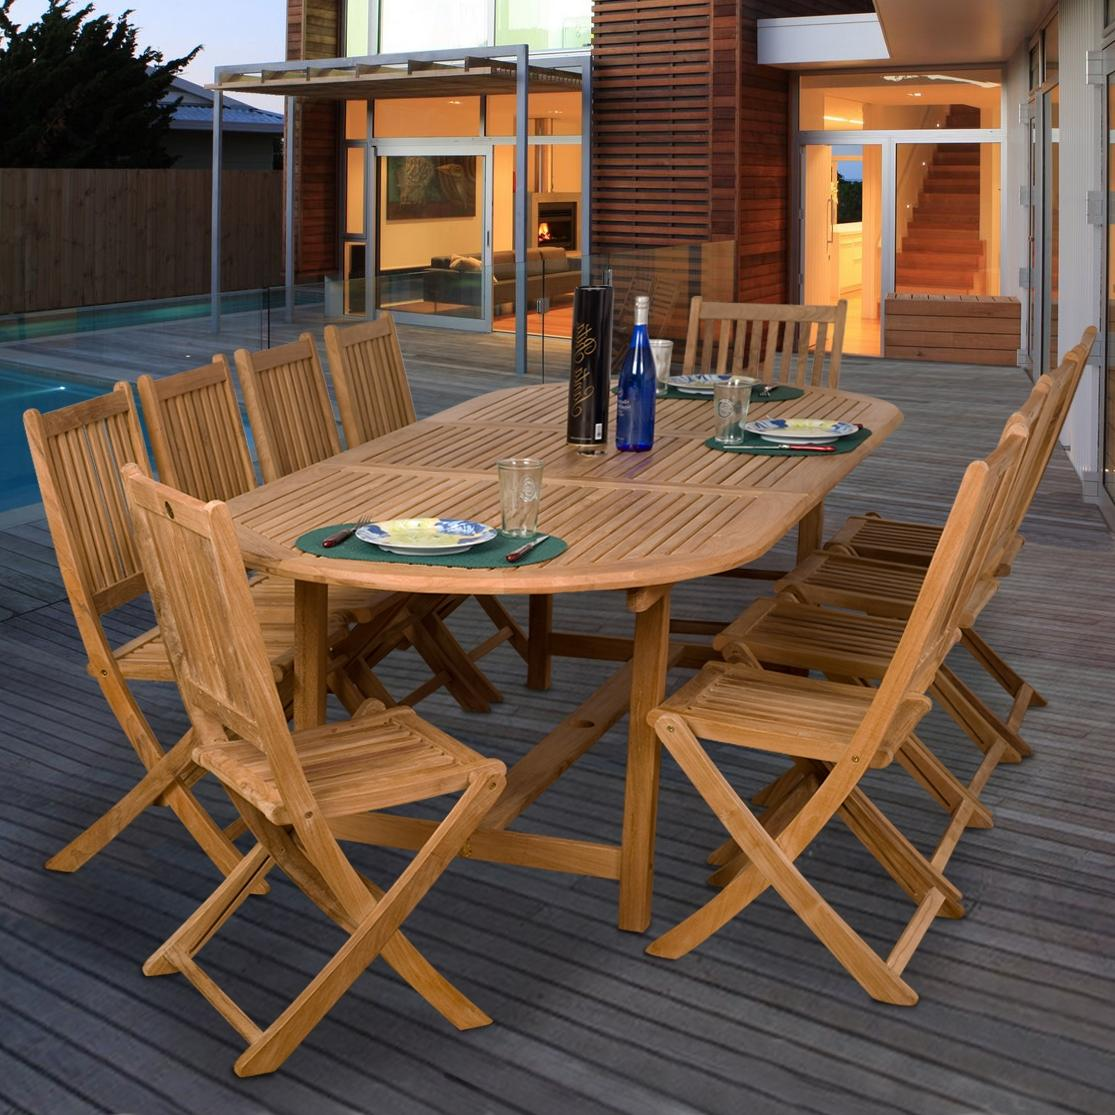 Amazonia Teak Bergen 10-person Teak Patio Dining Set With Extension Table And Folding Chairs